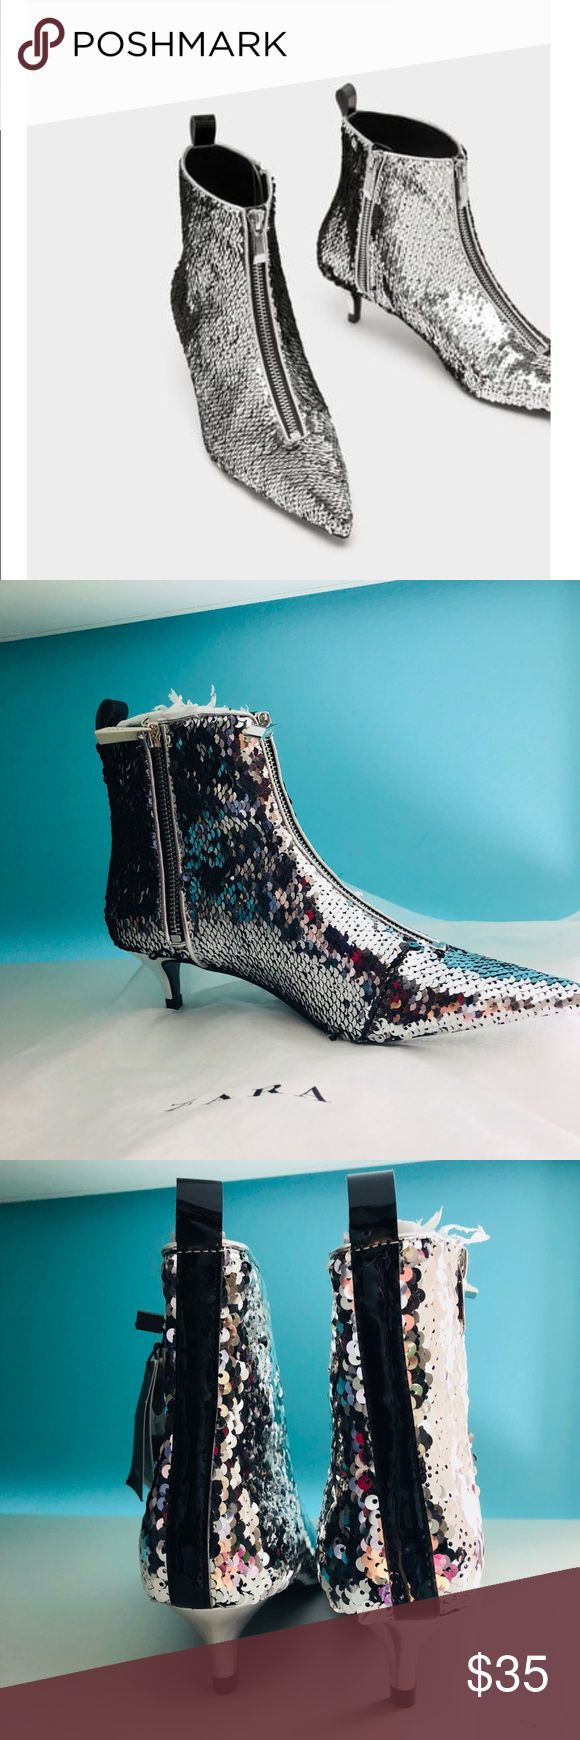 "Zara sequined silver ankle boot size 6 Zara sequined silver ankle boot size 6. Heel height 1.77"" Note sequins gets flipped it will look like a different shade. Just like a mermaid pillow. Euro size 36 US 6 Zara Shoes Ankle Boots & Booties"